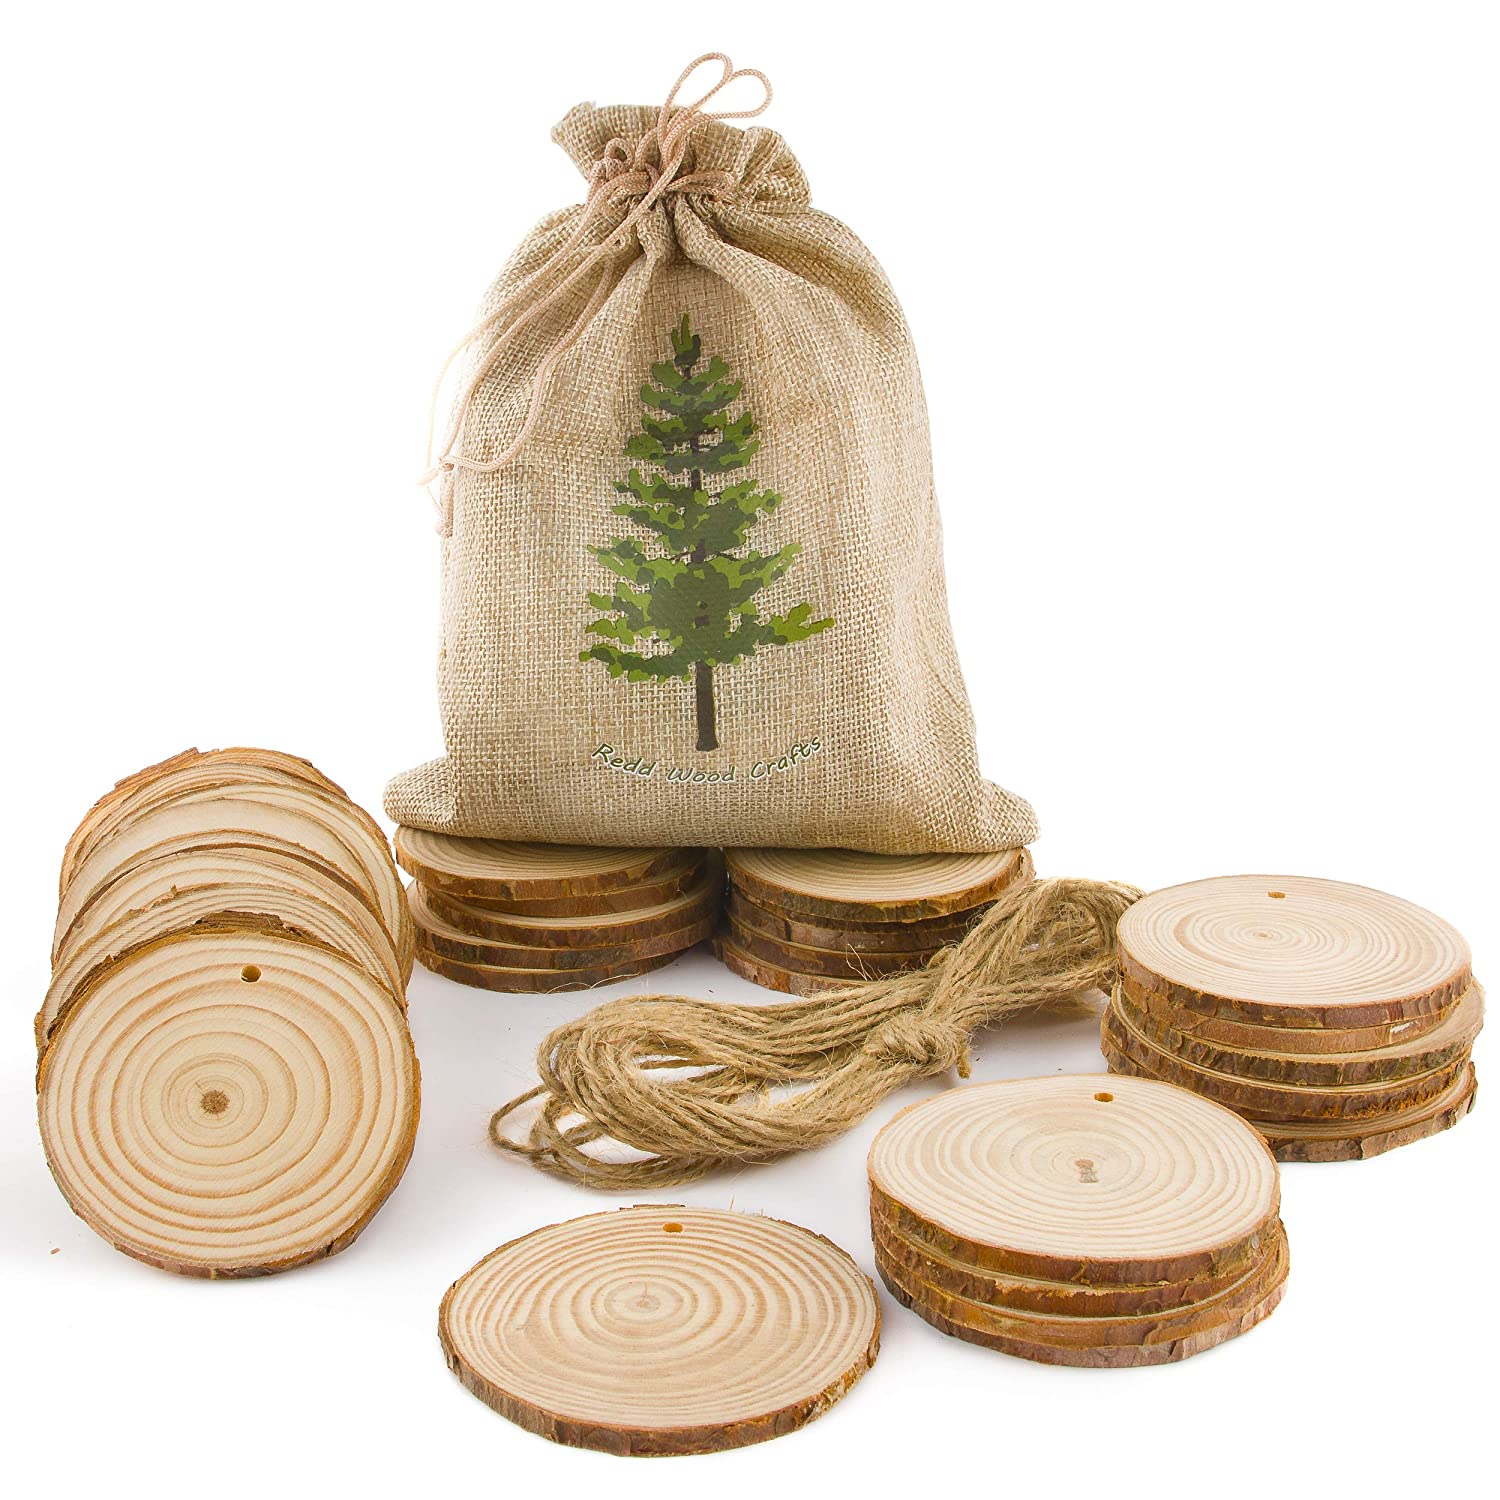 "2.25/"" With 16ft of Twine; Pre-Drilled Holes; For DIY Crafts Rustic Wedding D/écor; Unfinished Wooden Circles with Bark Seasonal and Holiday Decorations Natural Wood Slices 33pcs Christmas Ornaments"